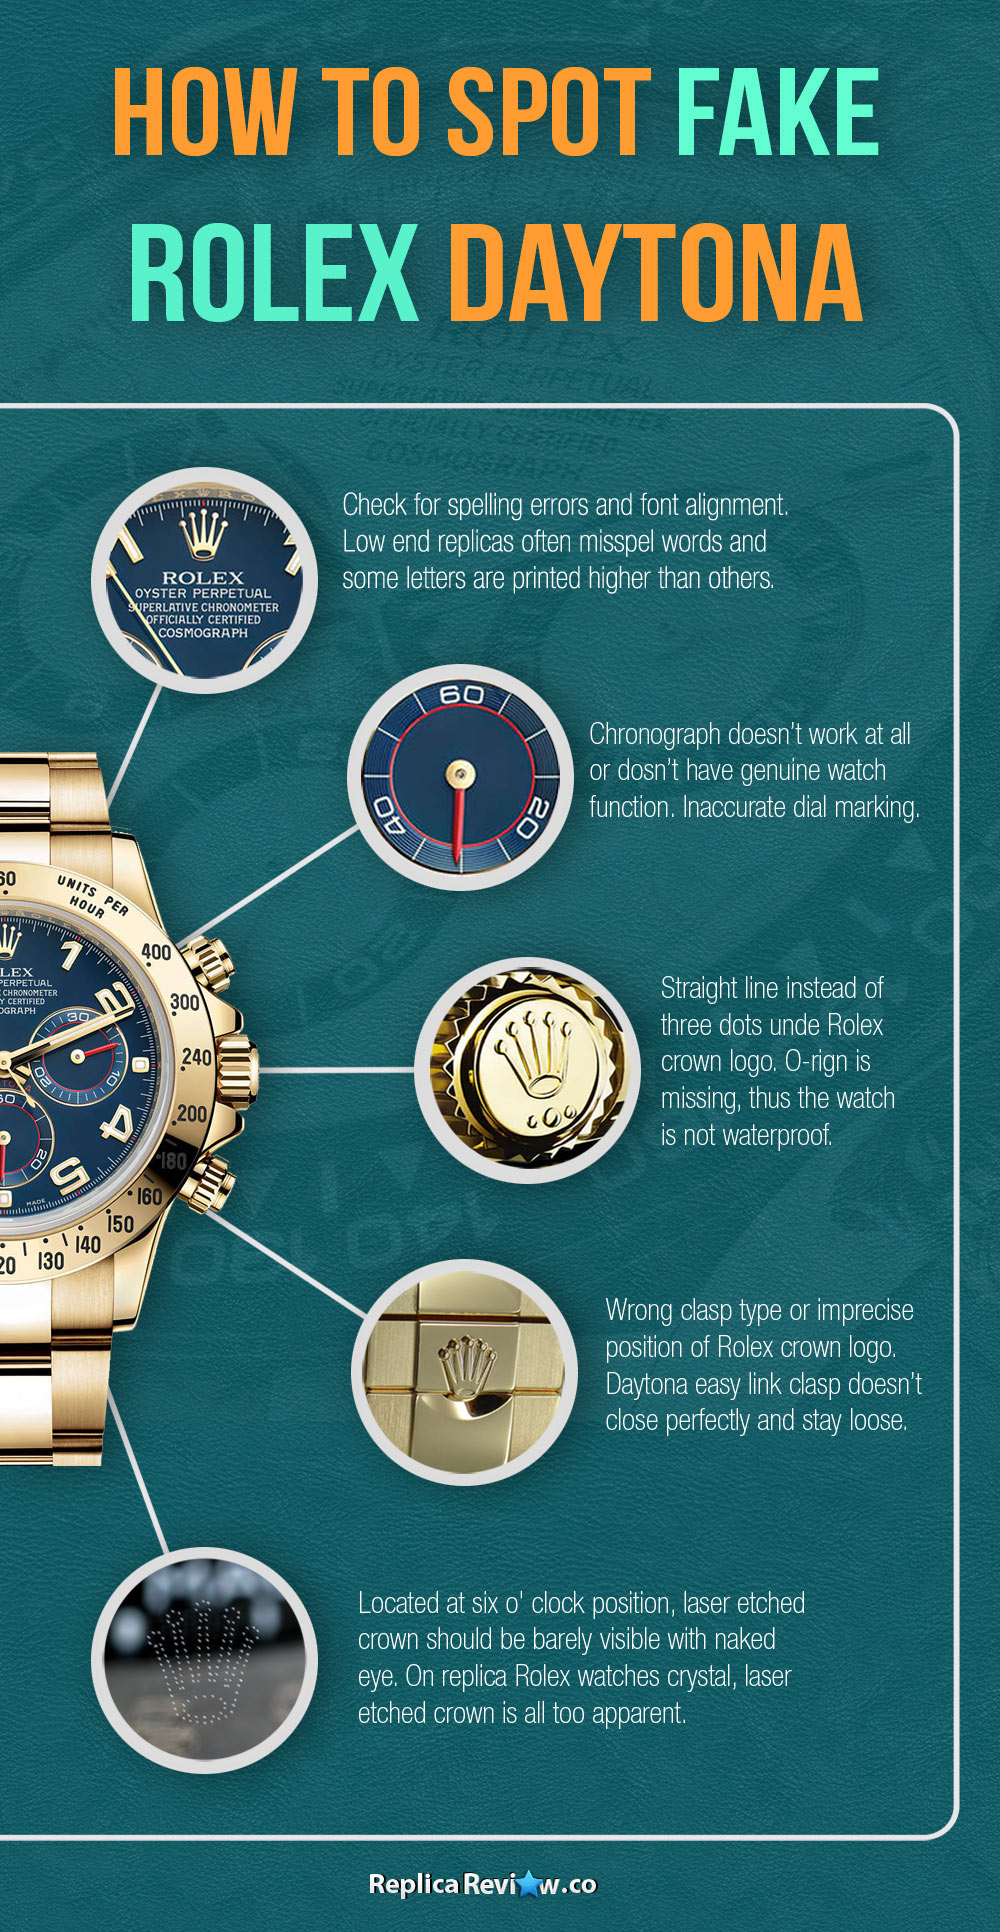 Fake daytona watch telltale signs